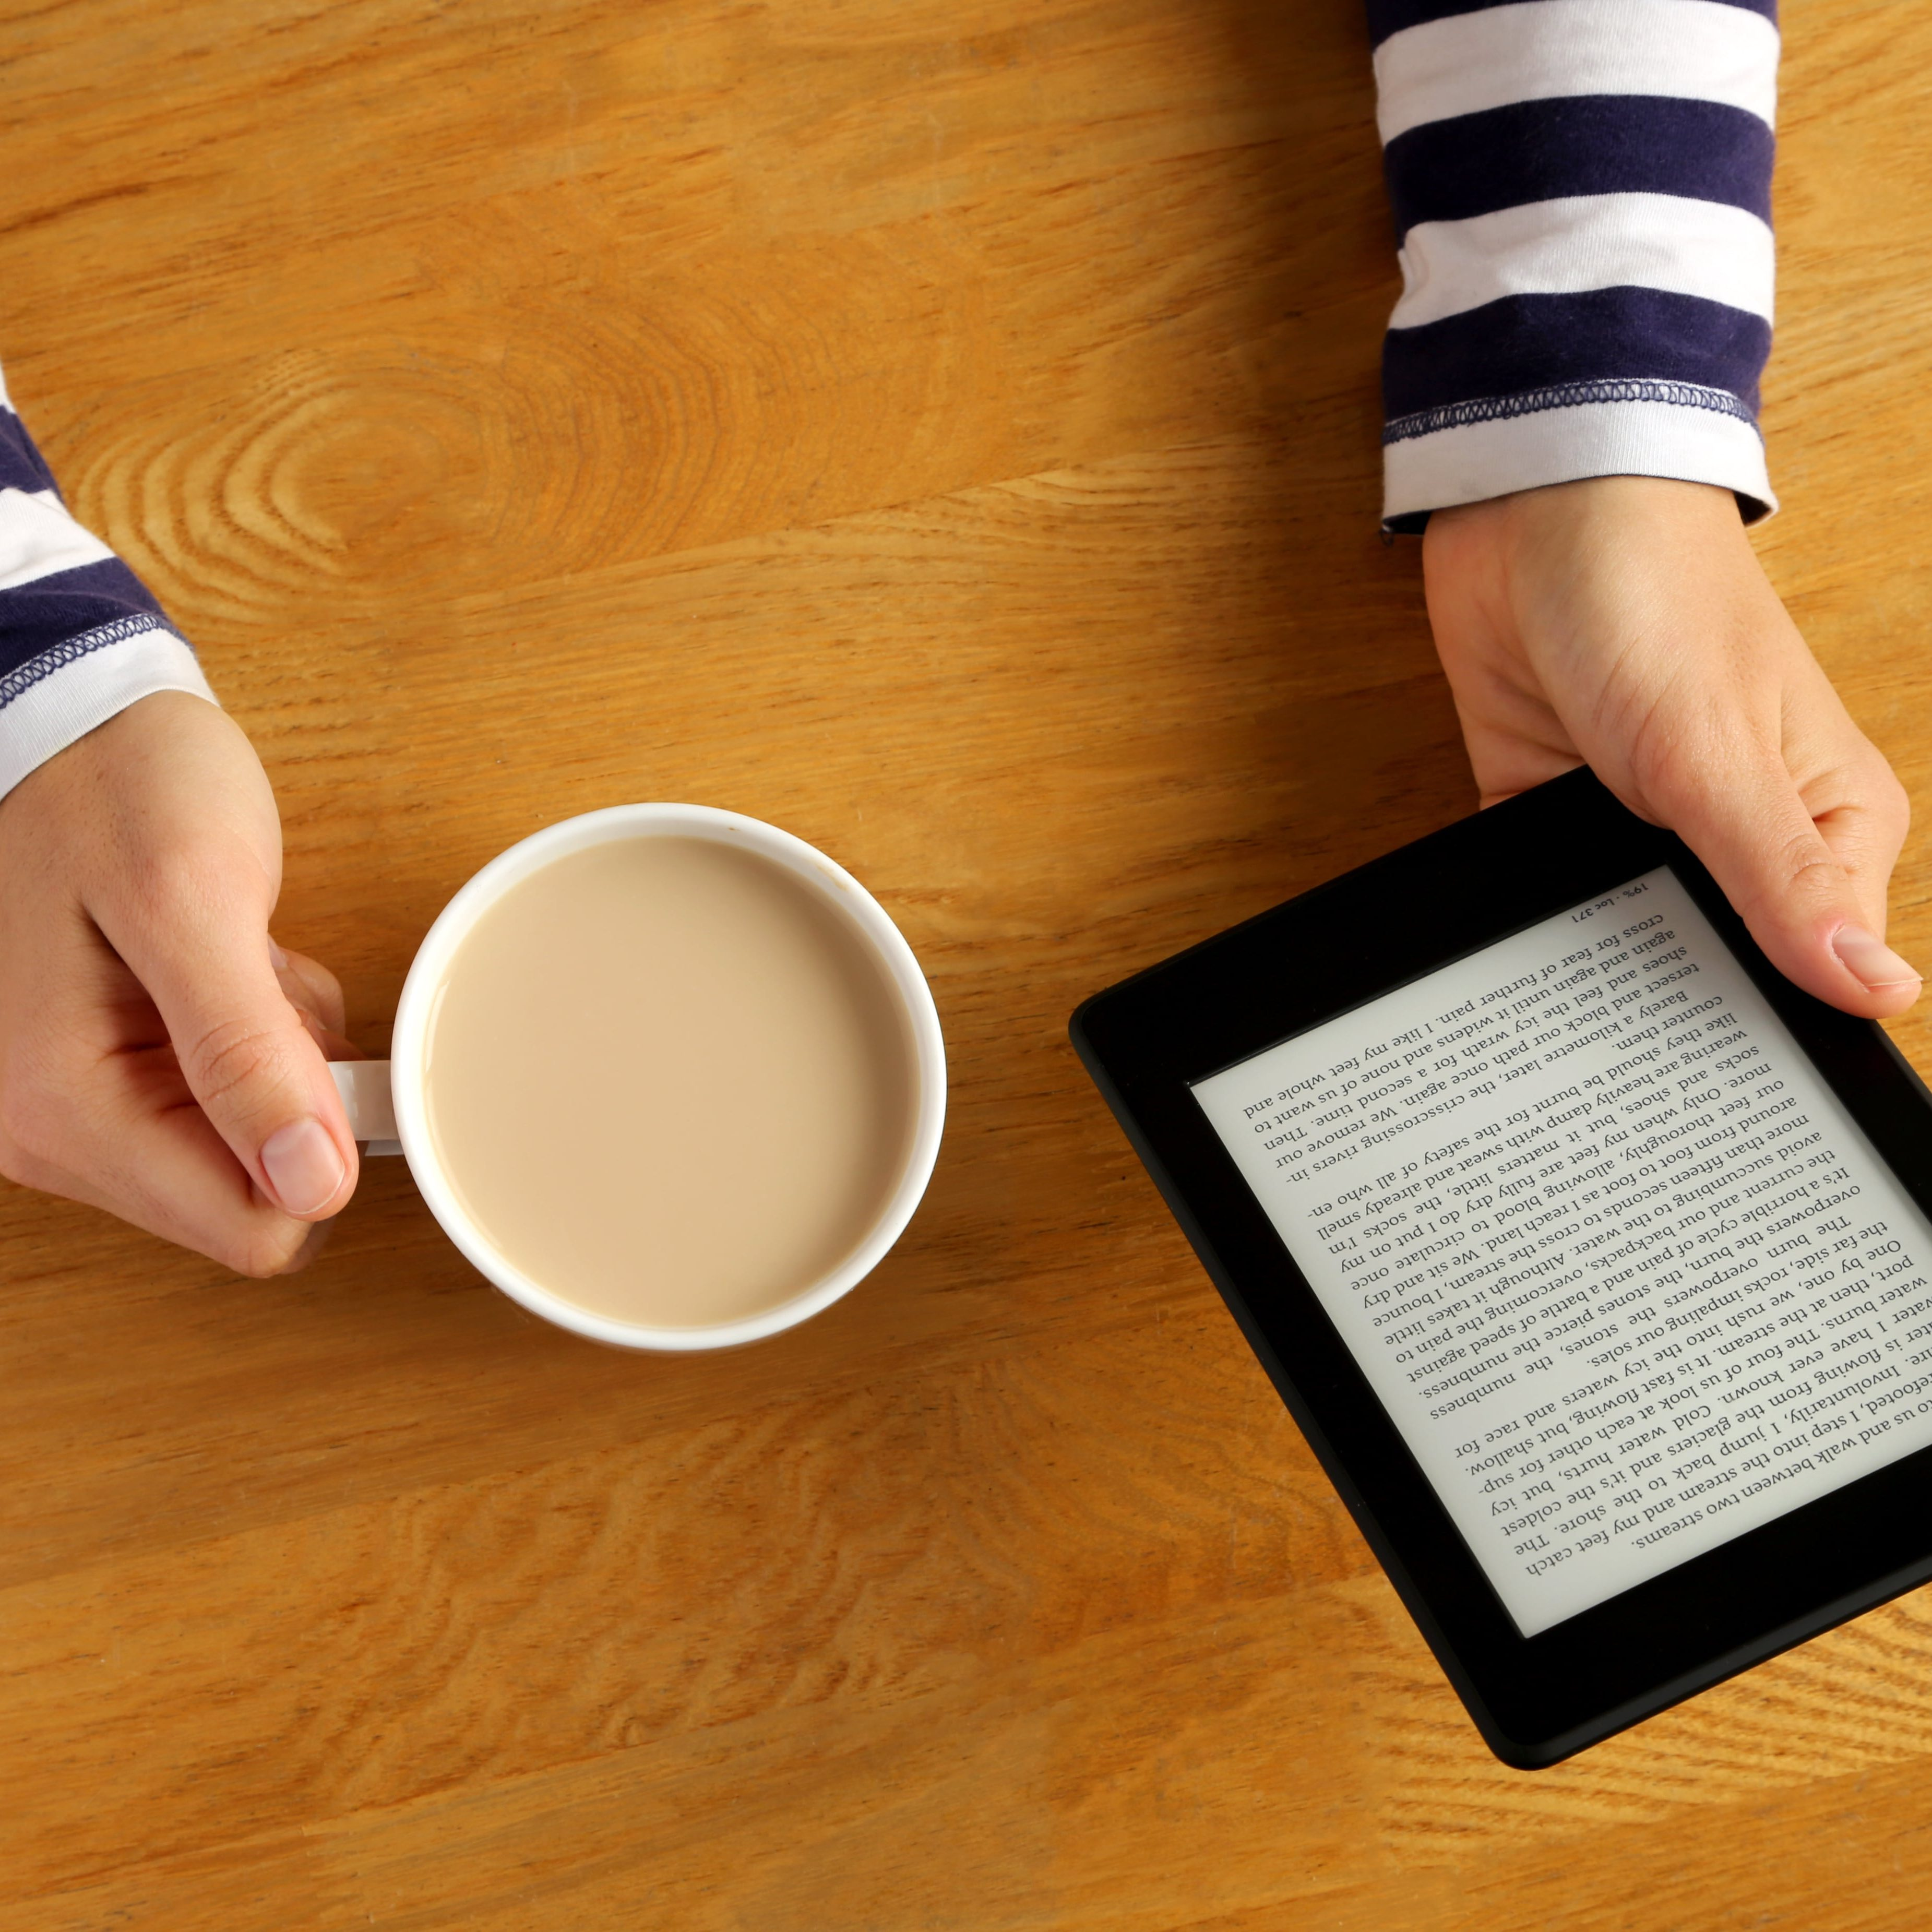 Transcription services and digital accessible formats. Image shows woman reading kindle.